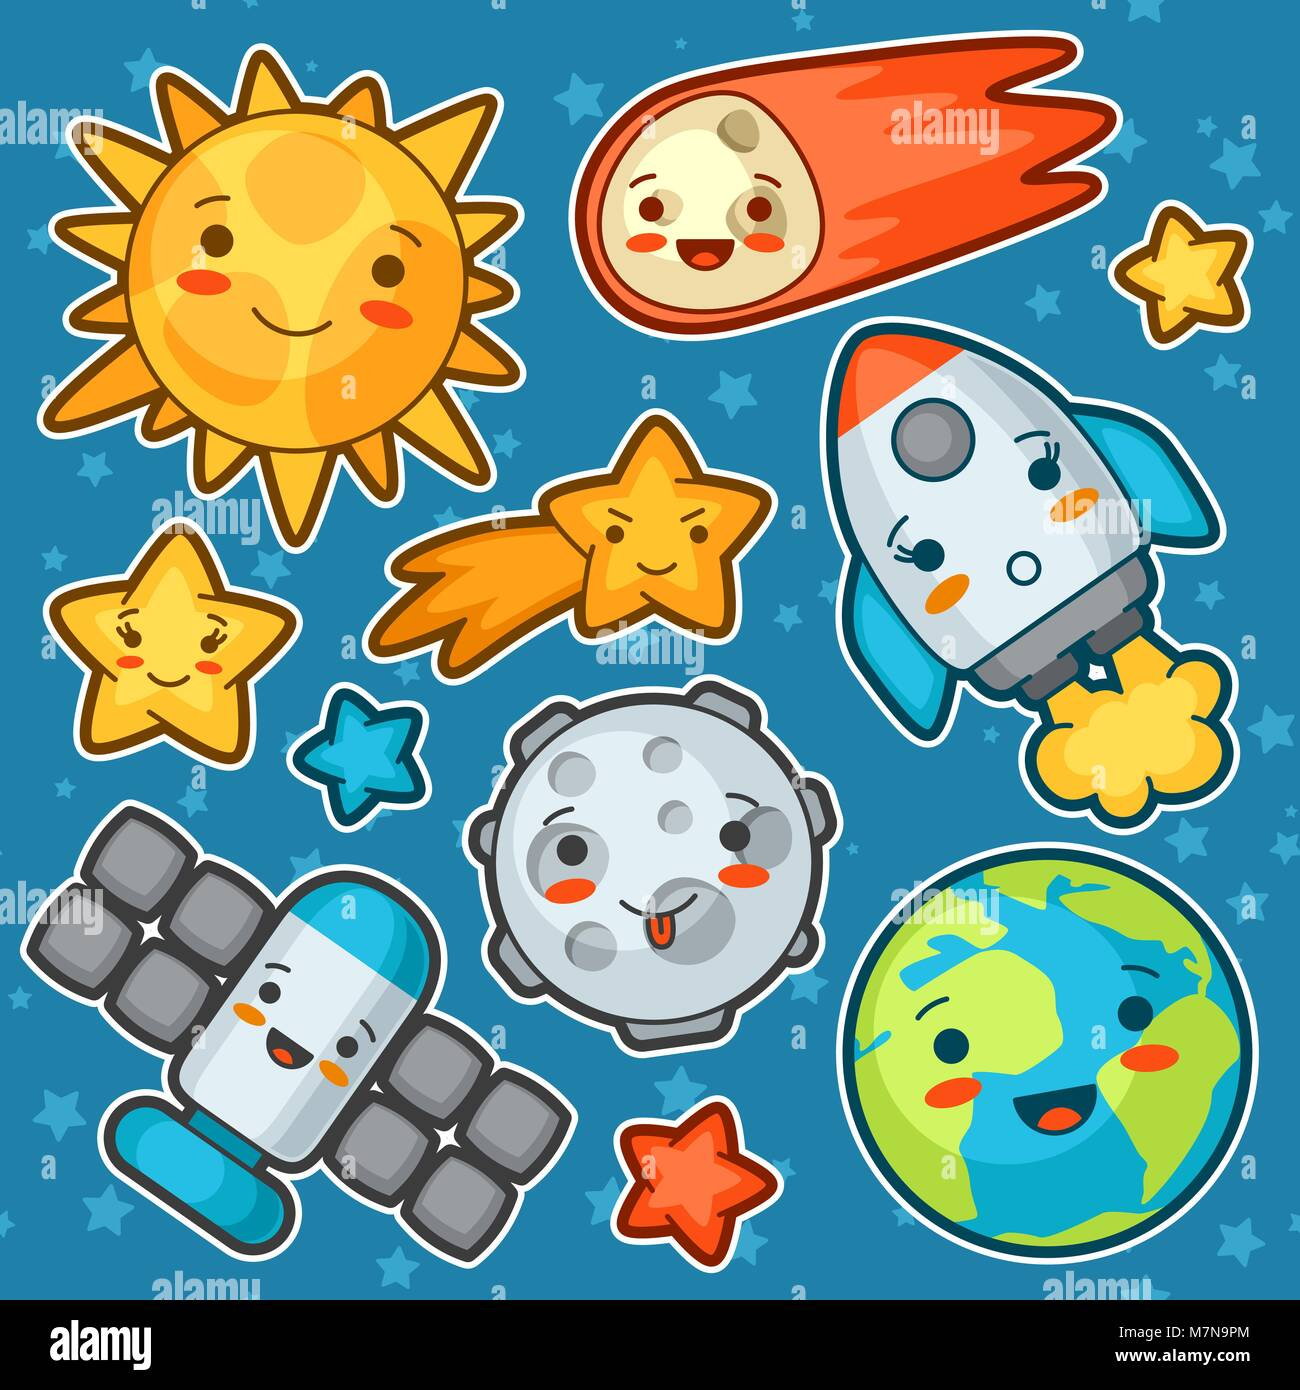 Set kawaii space objects. Doodles with pretty facial expression. Illustration of cartoon sun, earth, moon, rocket - Stock Image